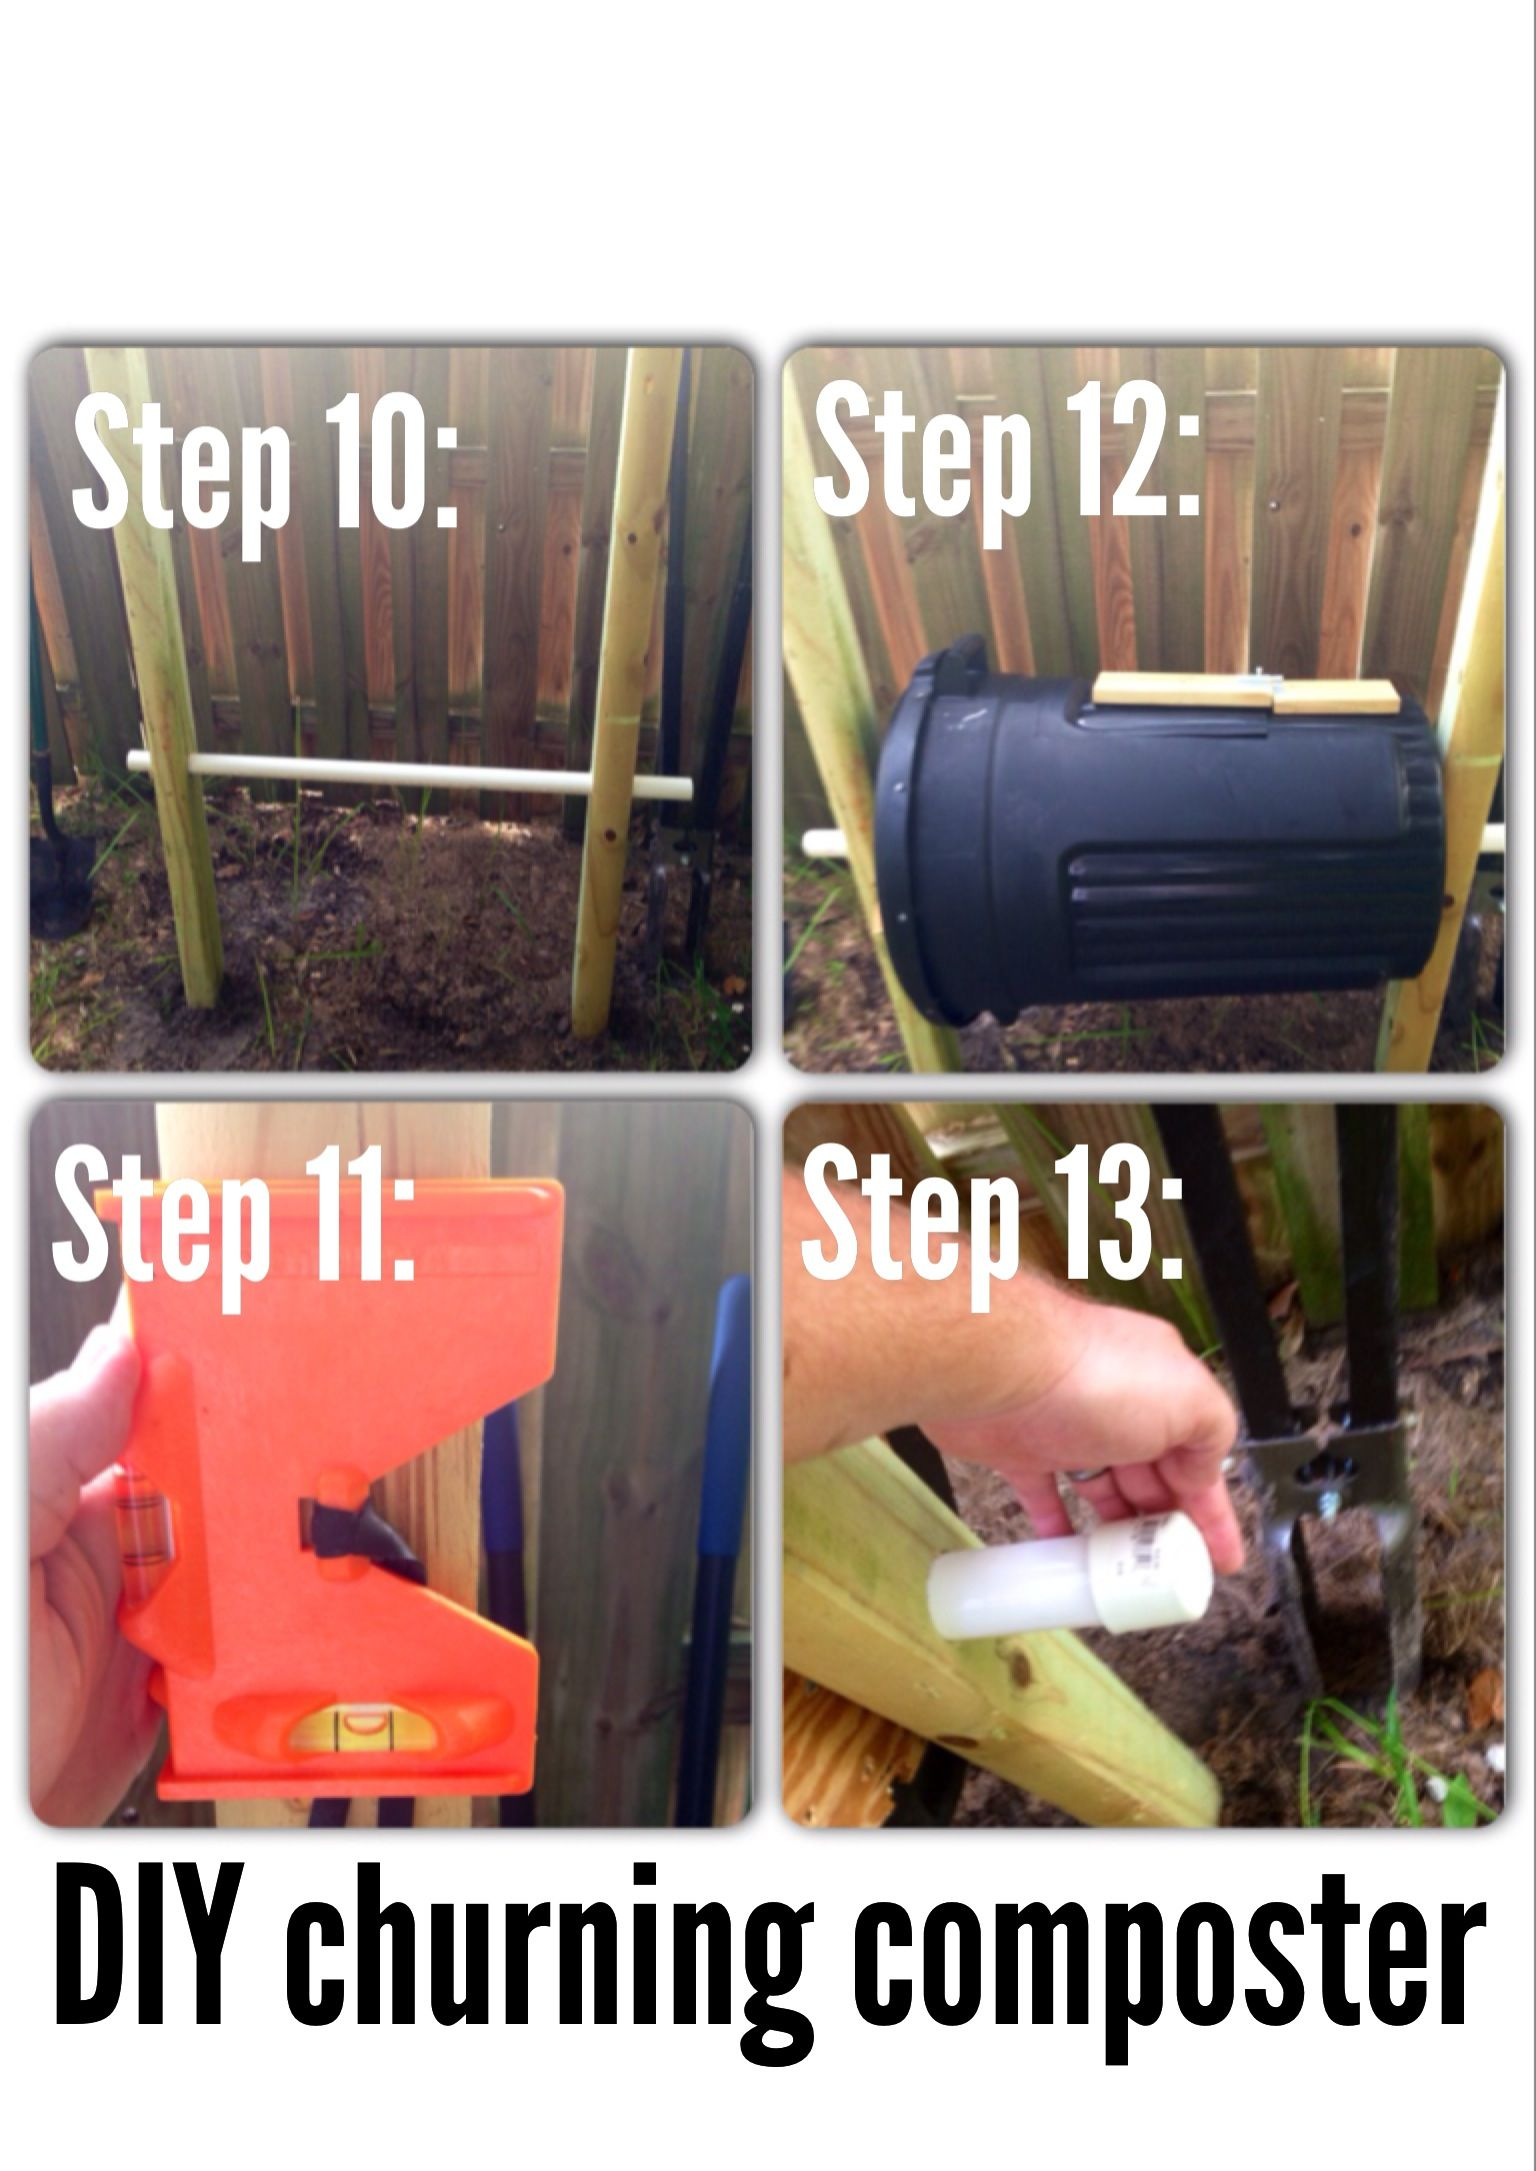 DIY cheap churning Composter directions: Step 10: dig 2 feet holes with post hole diggers.  Step 11: use post level to get your posts level both front-to-back and side-to-side. Place pipe in to make sure pipe is level too. Adjust as necessary.  Step 12: back out pipe and insert trash can. Run the pipe through posts and trash can.  Step 13: place end caps on pipe. No need for glue, just tap them on (just keep critters/bugs out).   Ok!! You are done. In resting position, keep latch facing up!